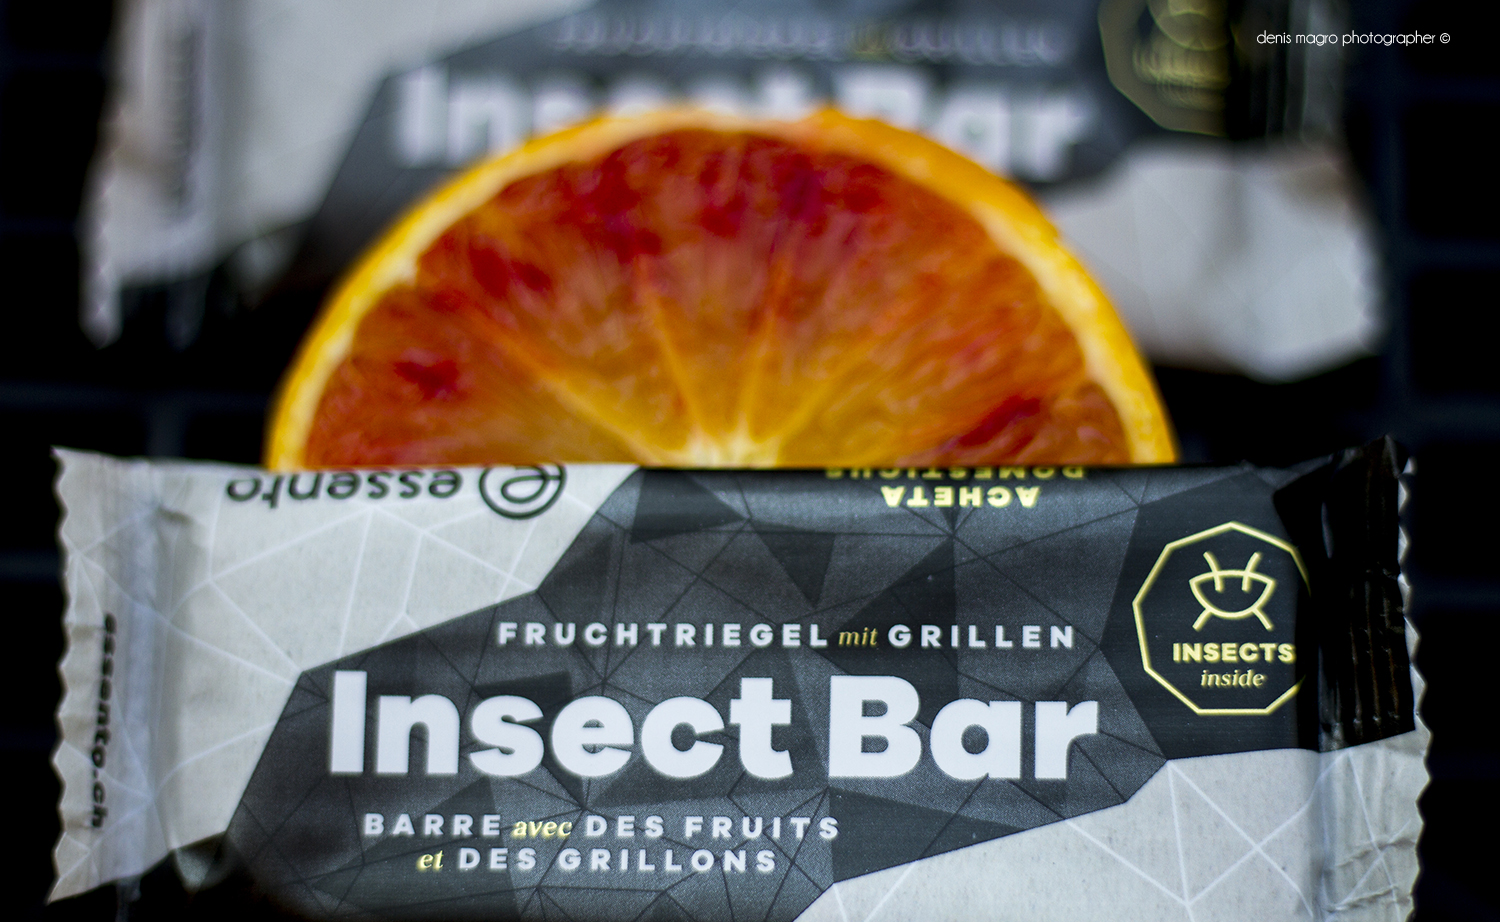 Entofoodvisions / Denis Magro / edible insects